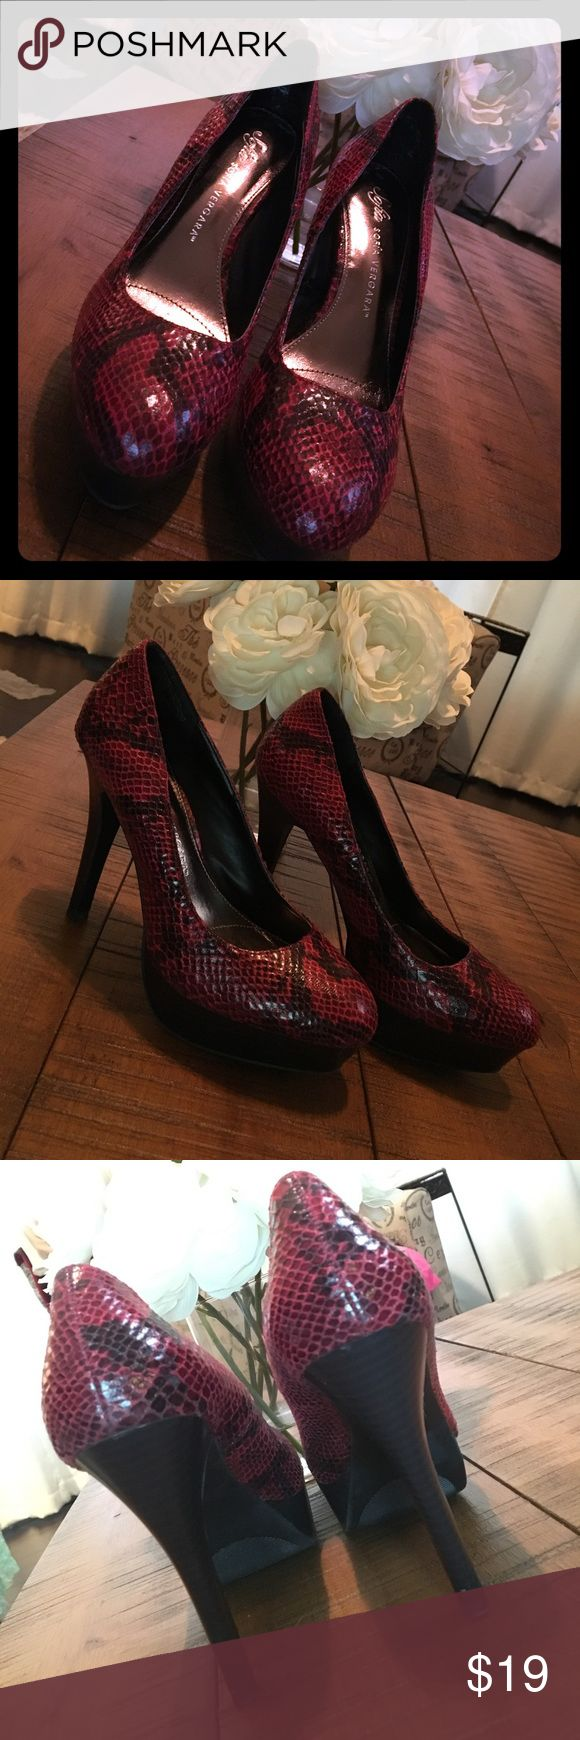 "Sofia Vergara Faux Snakeskin High Heels Black and red Faux snakeskin high heels with black heel and platform. These are like new and have only been worn once! Heel height is 5""! Sofia Vergara Shoes Heels"